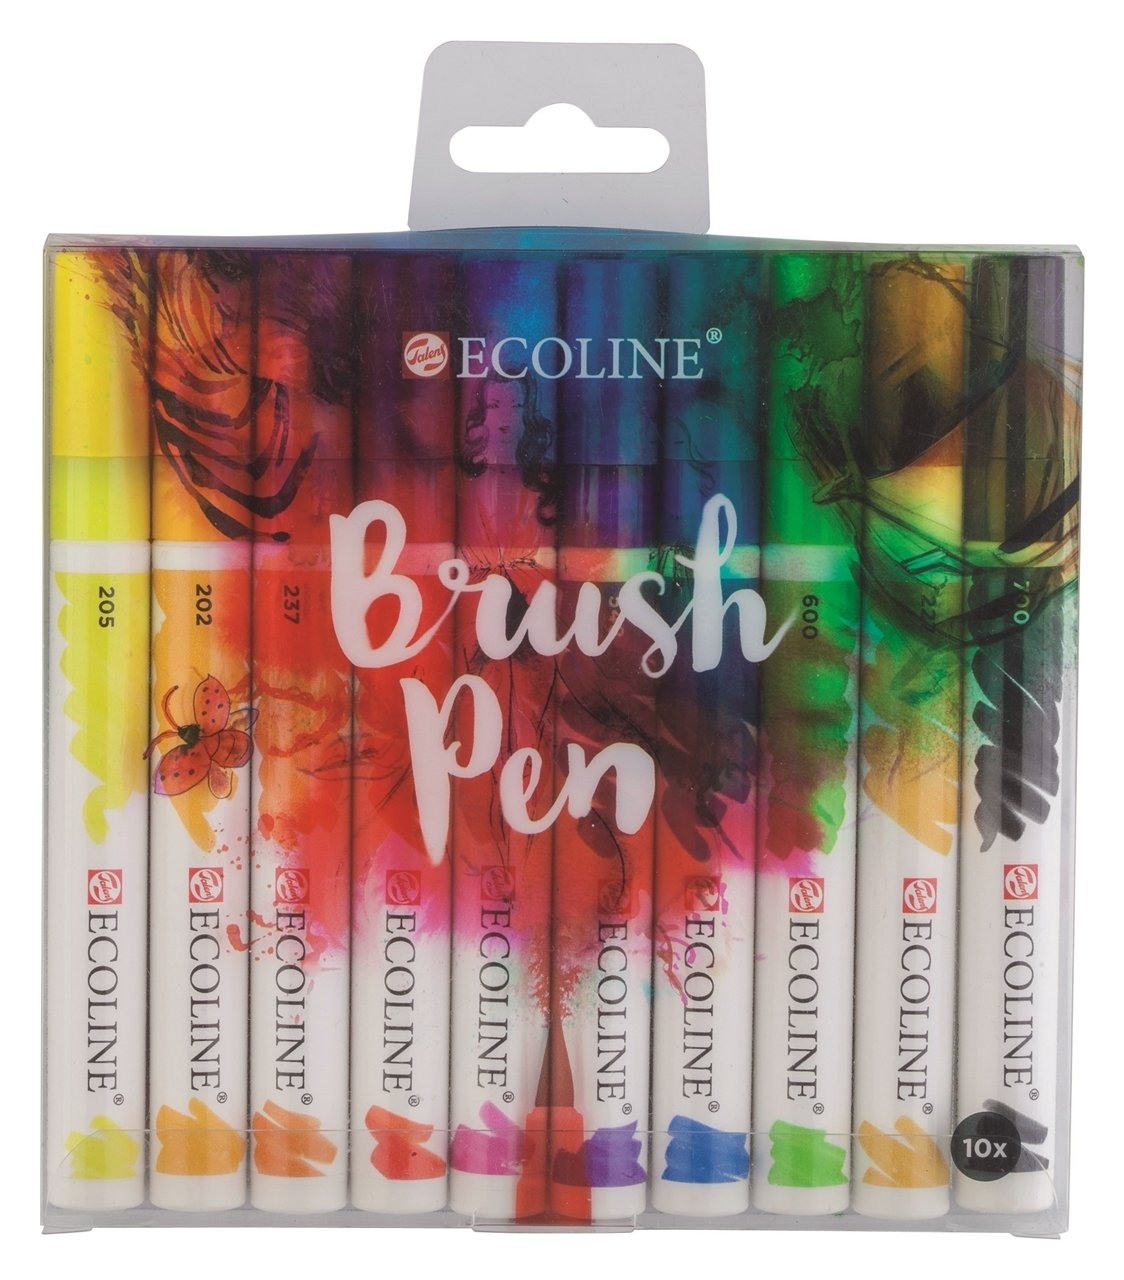 Ecoline Brush pen set of 10 EBP10